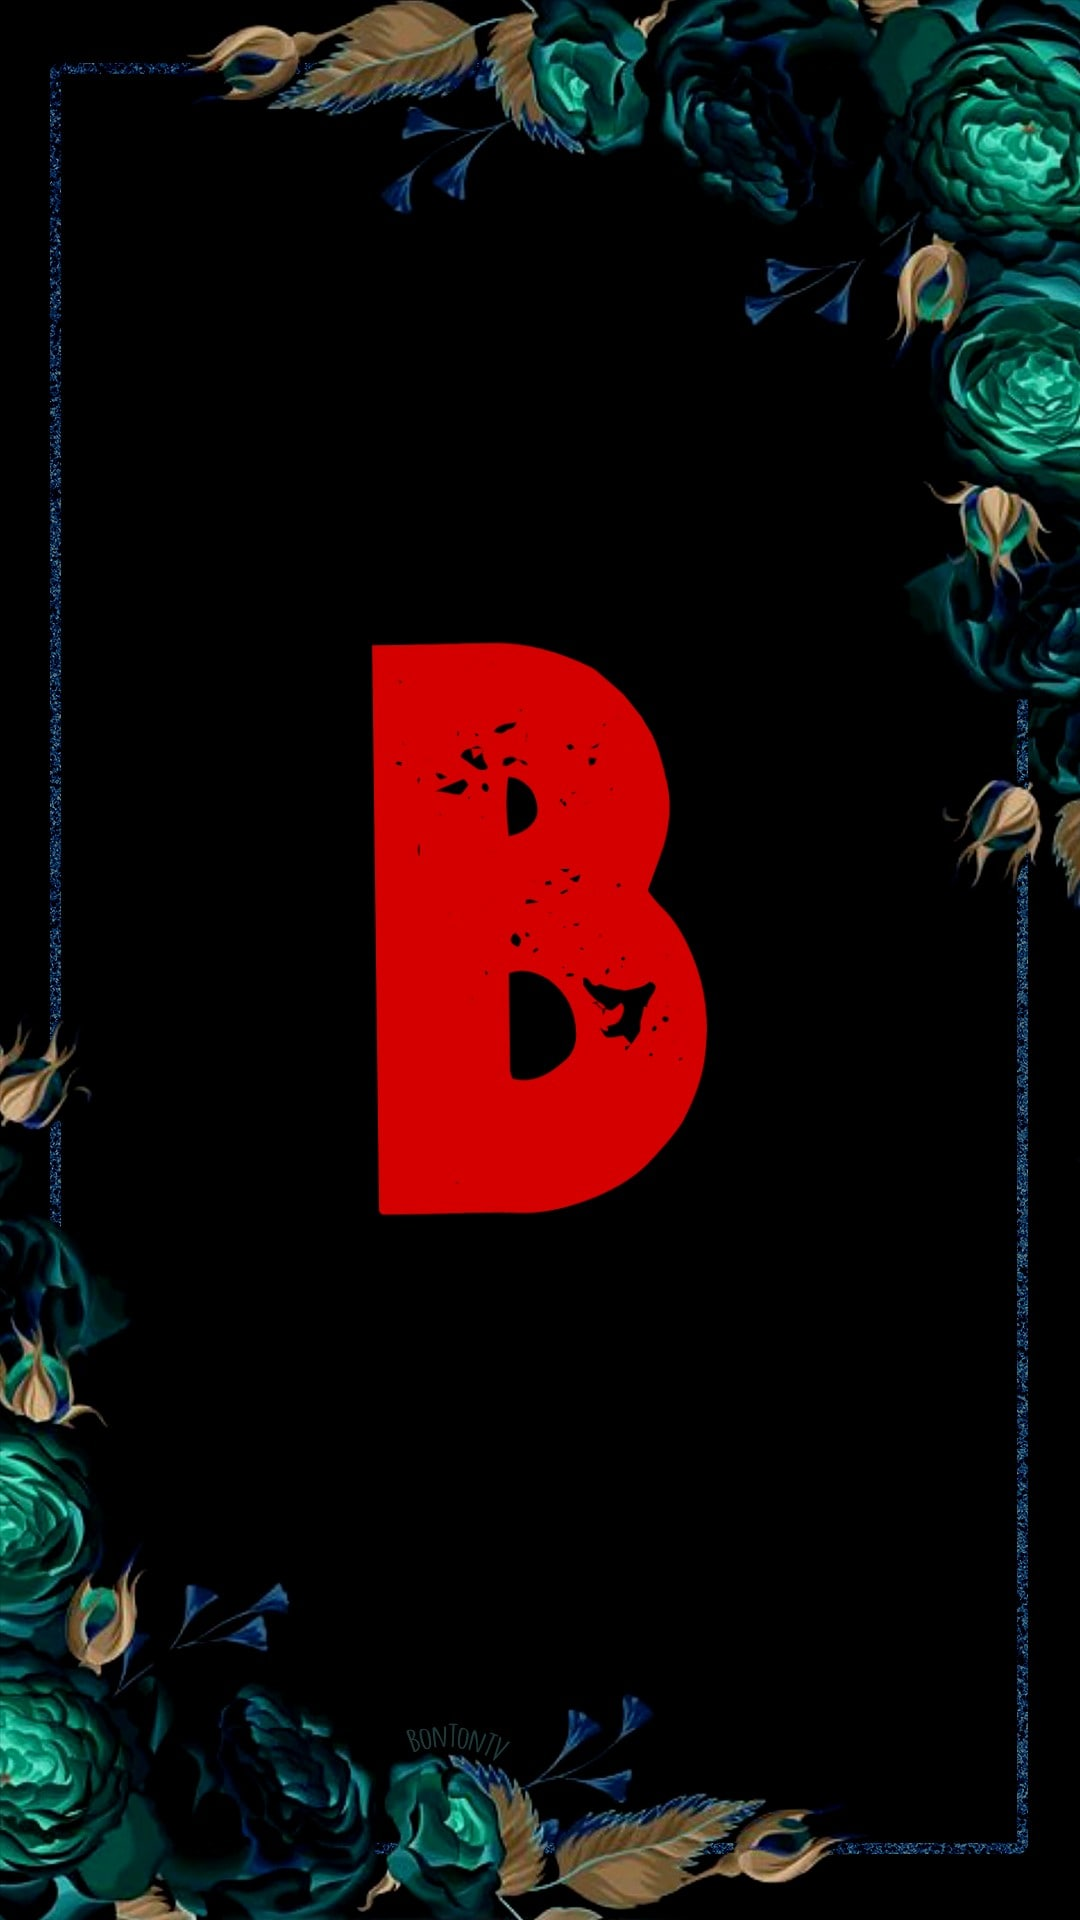 B Alphabet in Red